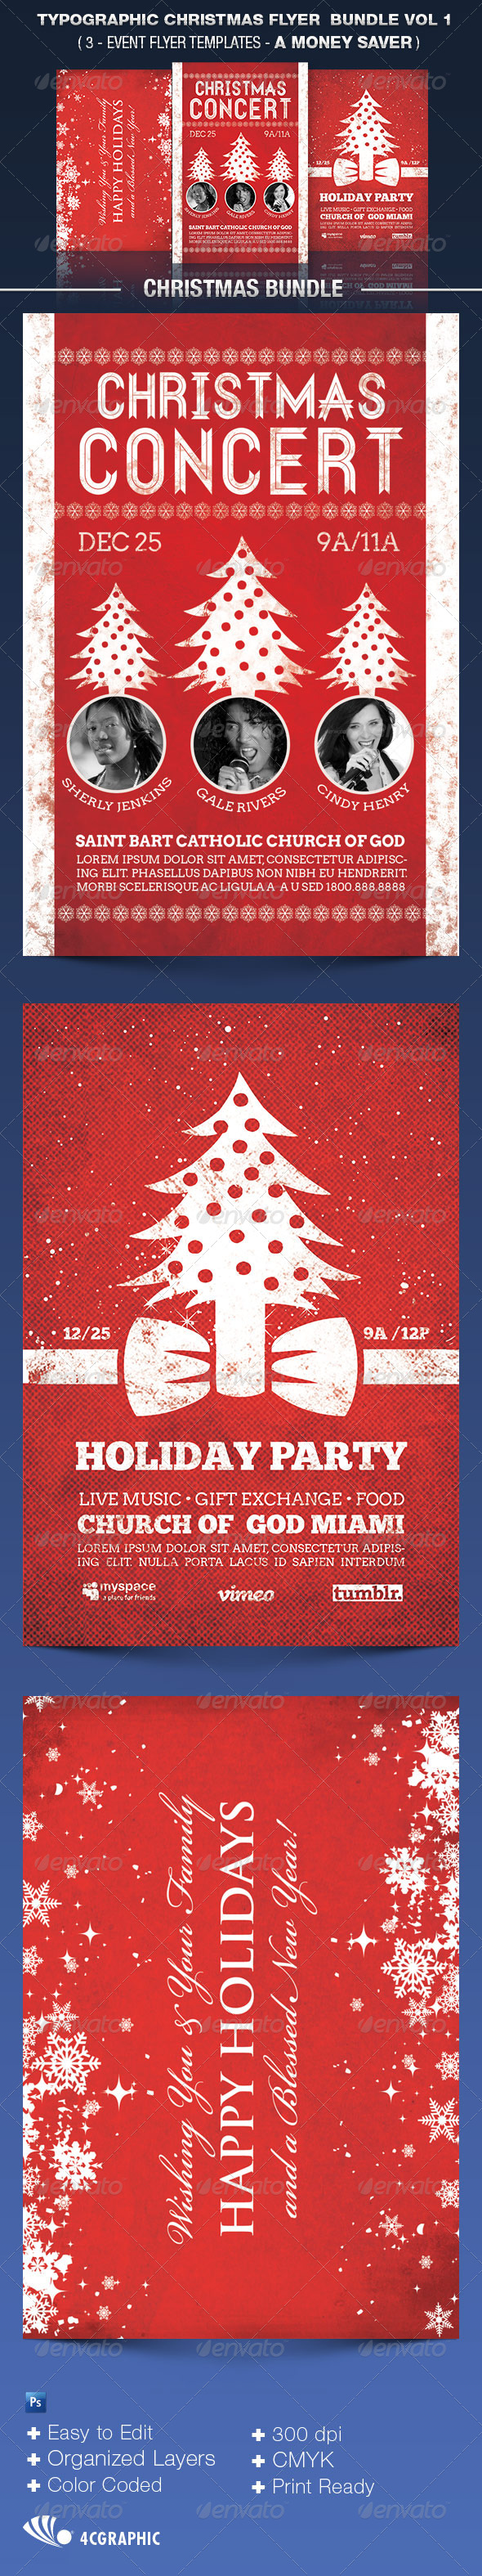 Typographic Christmas Flyer Bundle Vol 1. - Events Flyers